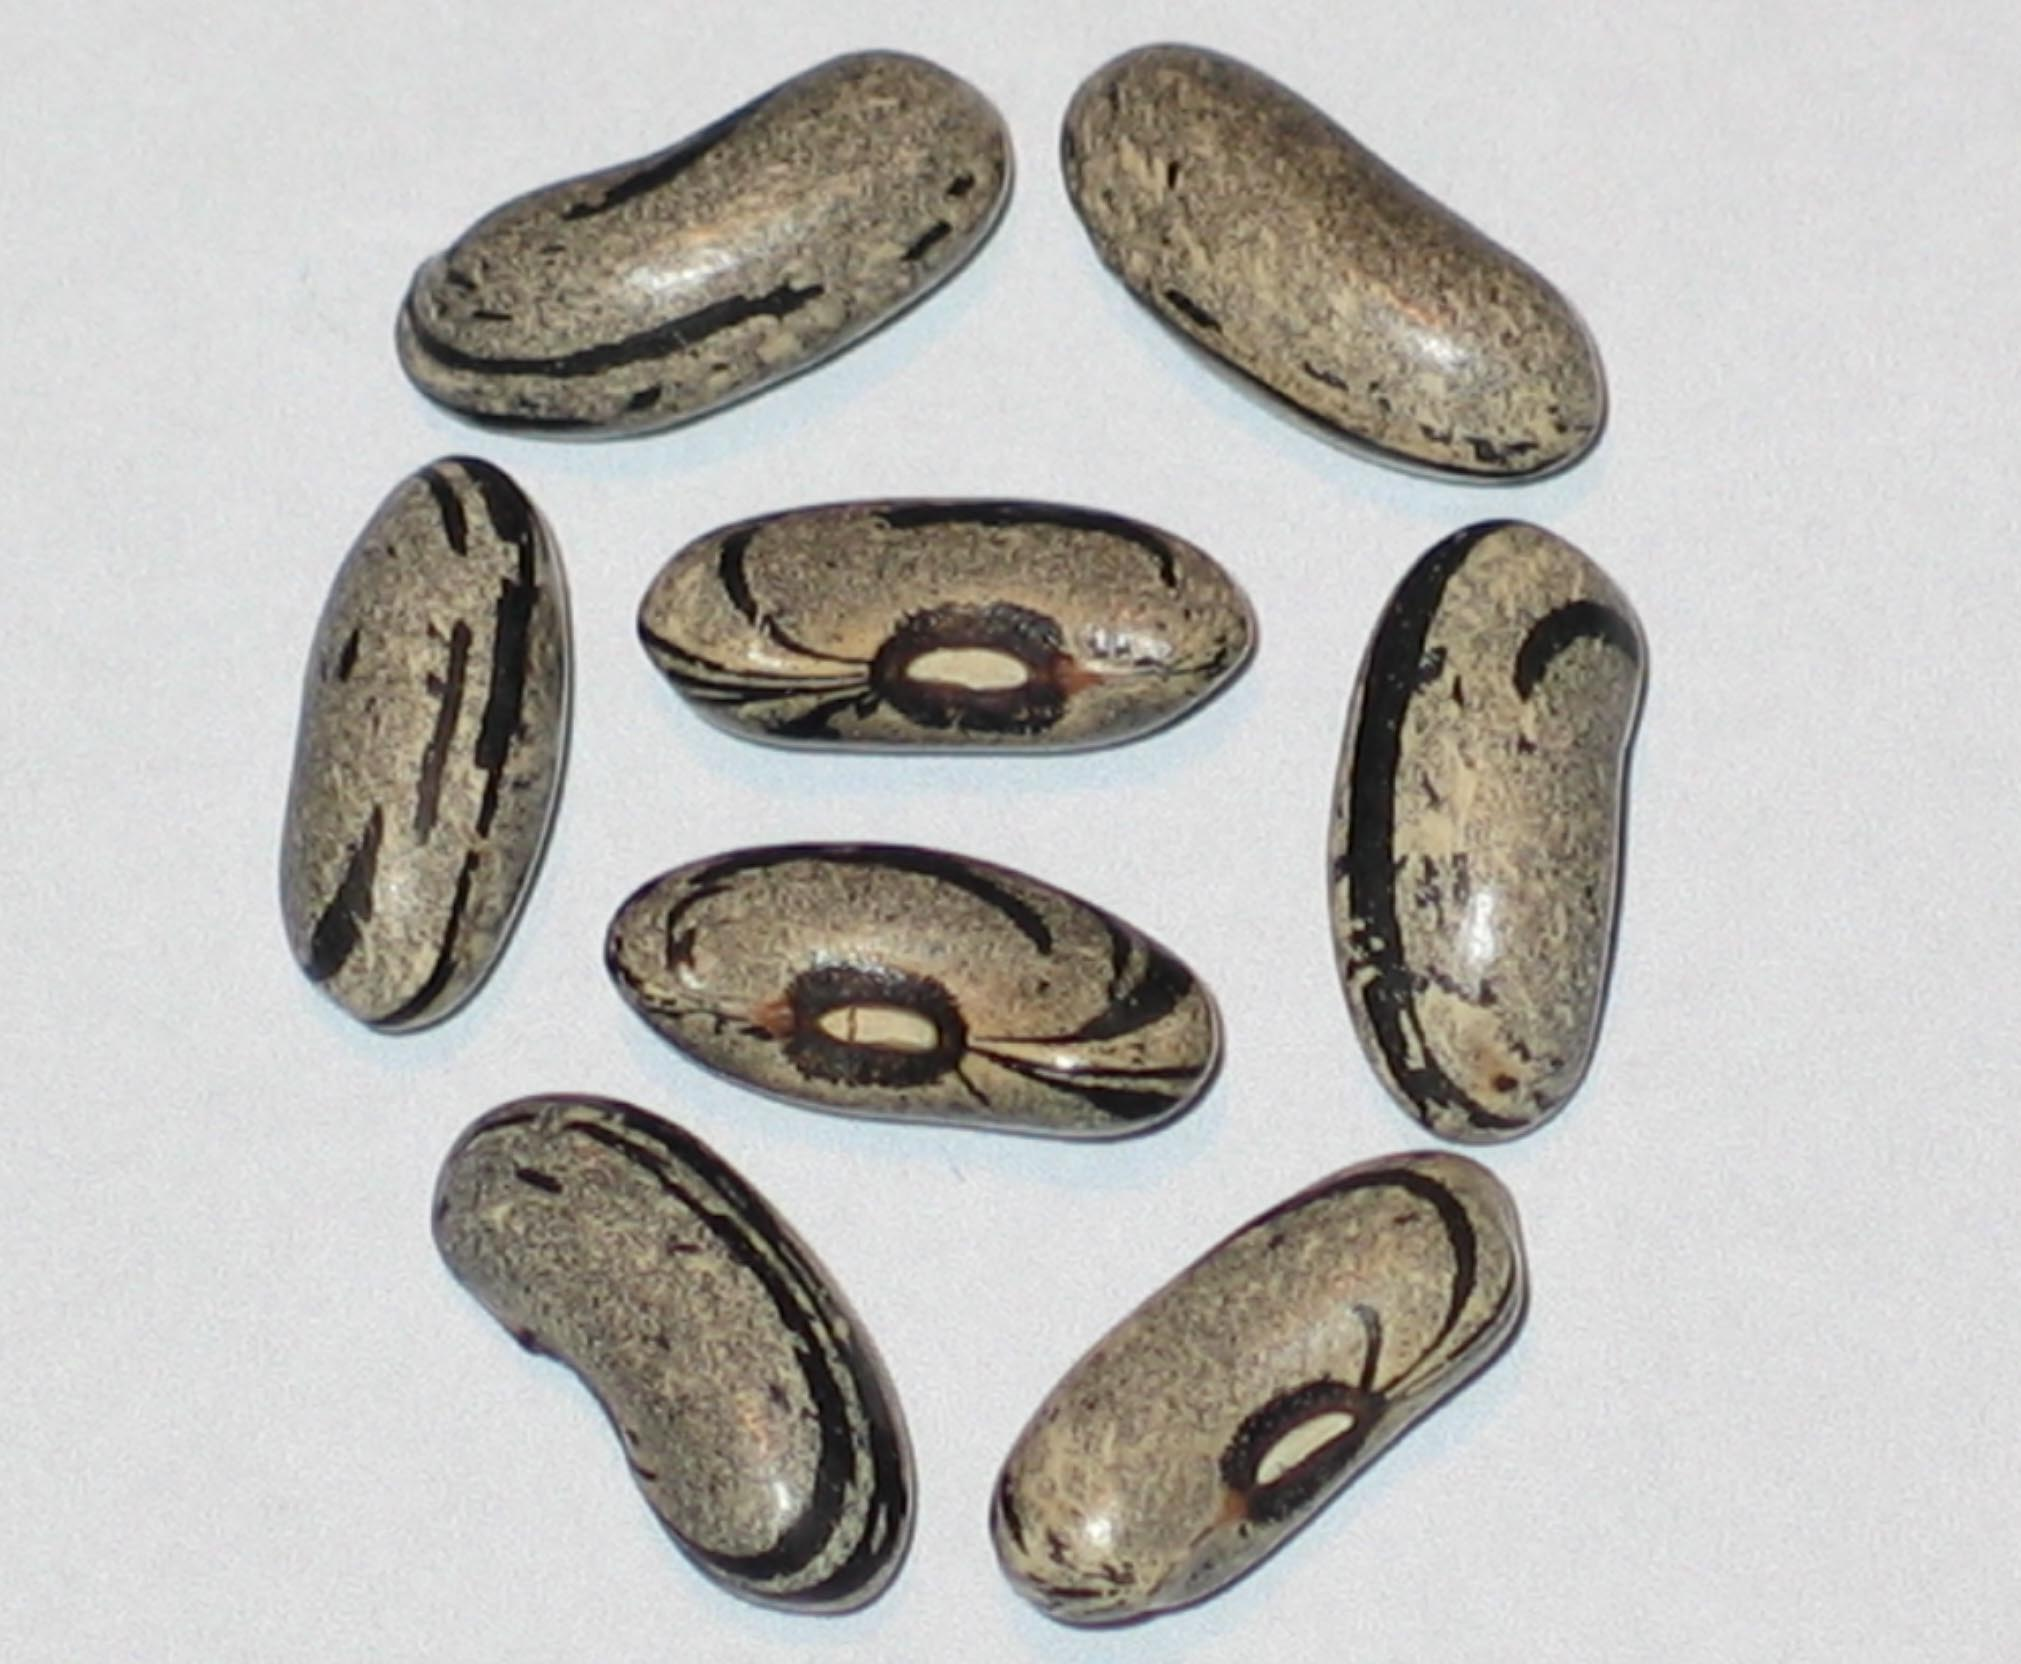 image of Tennessee Wonder beans